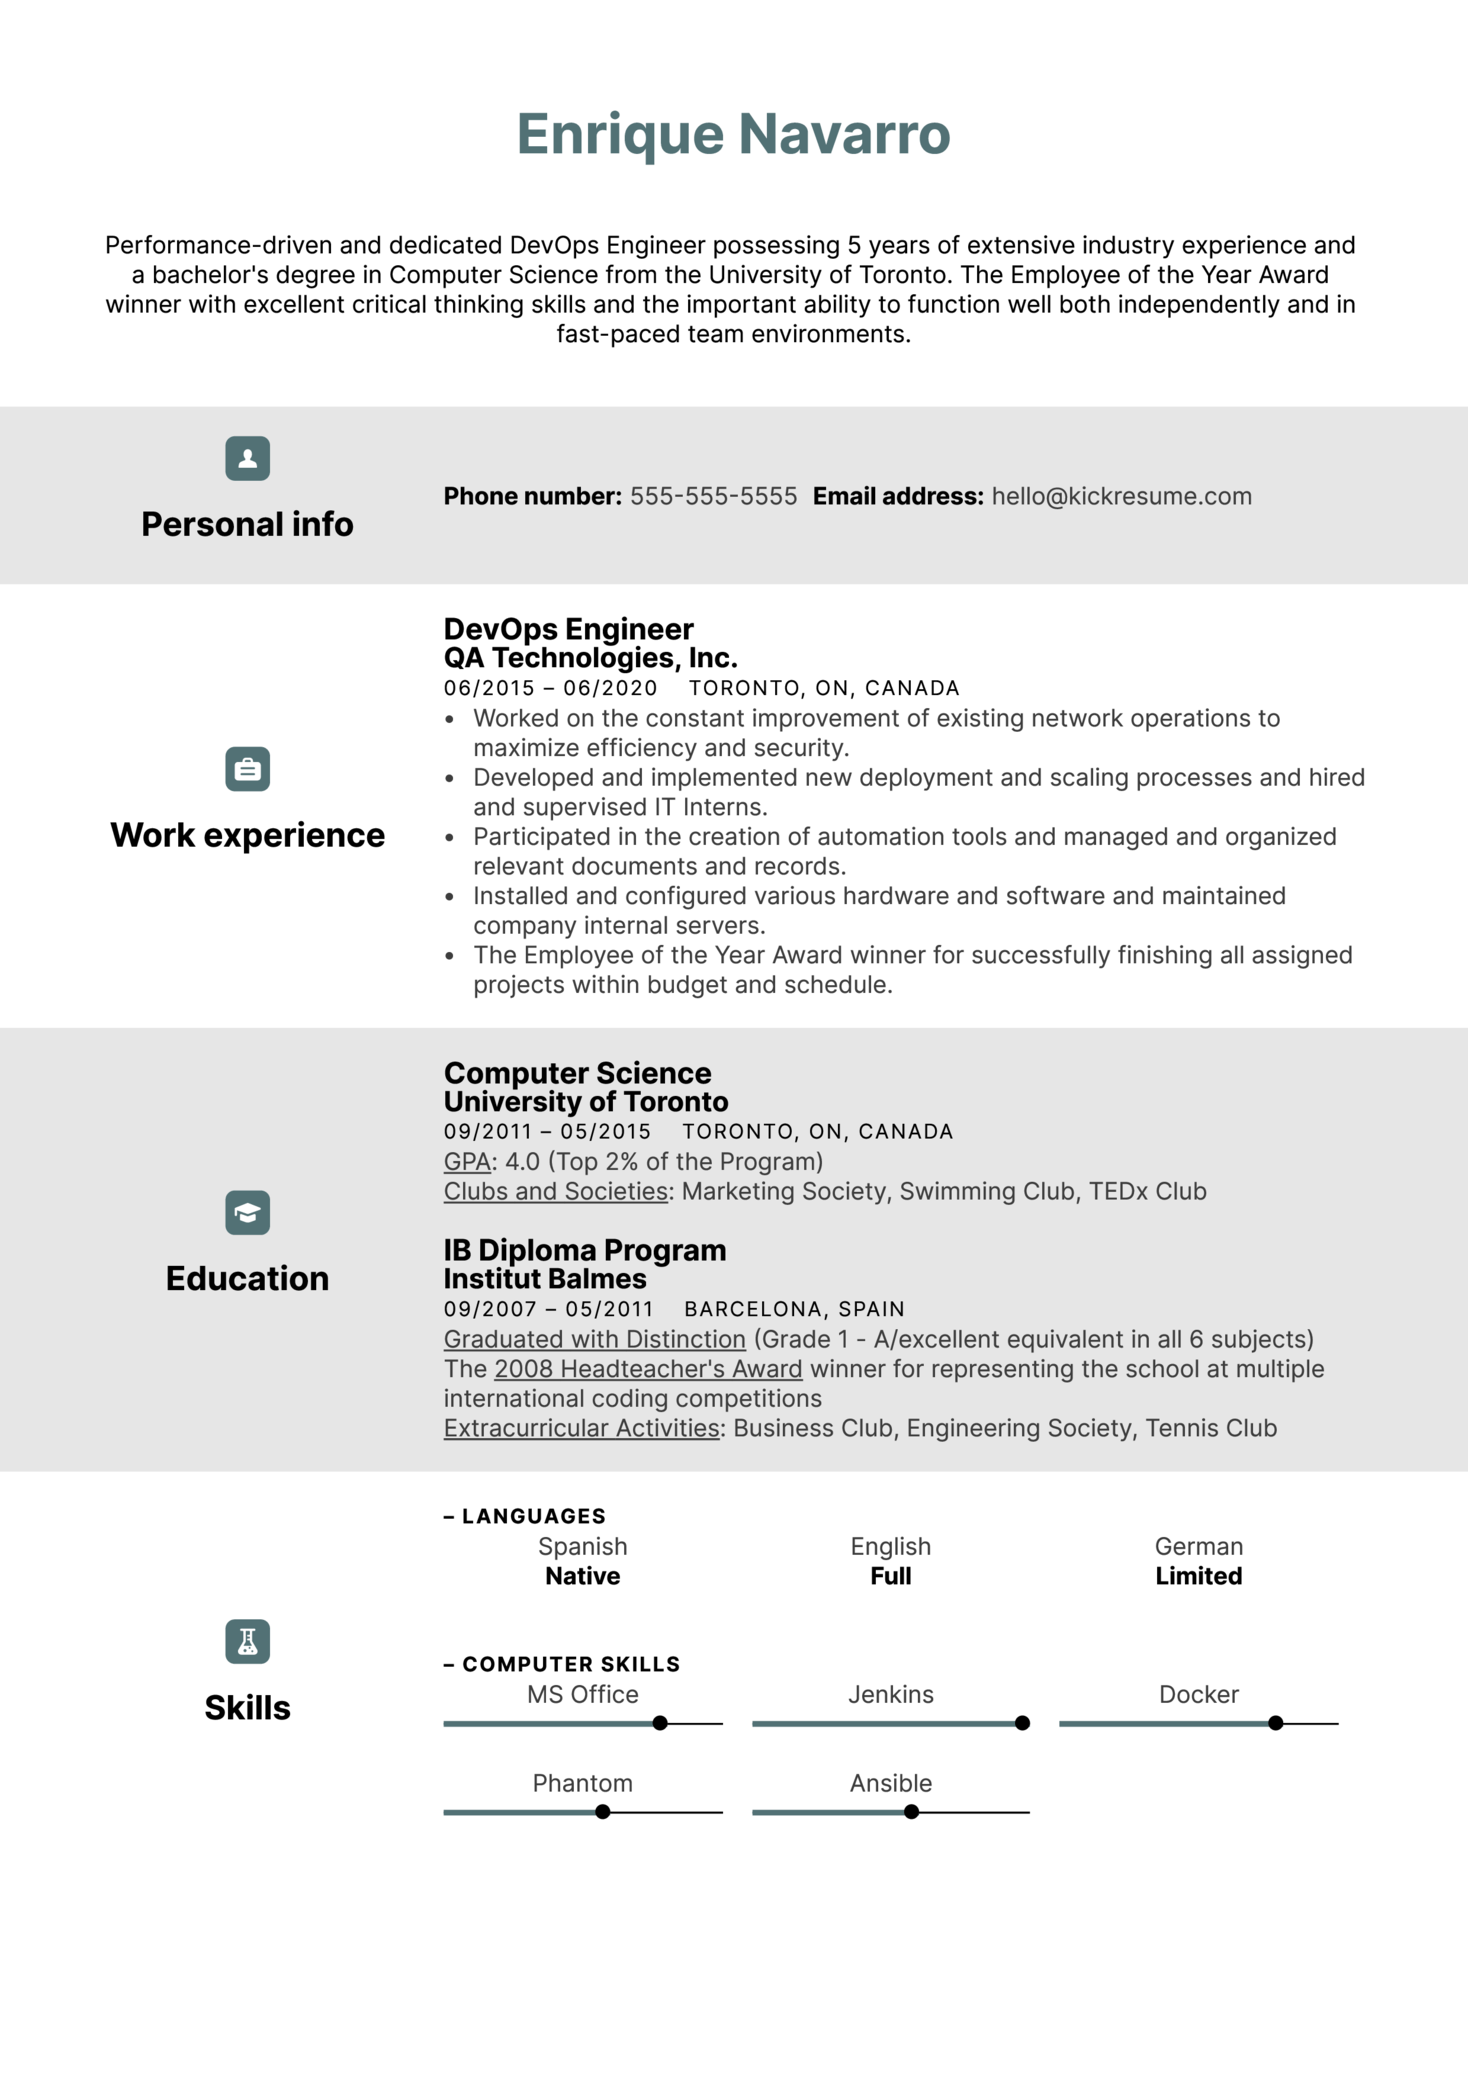 DevOps Engineer Resume Sample